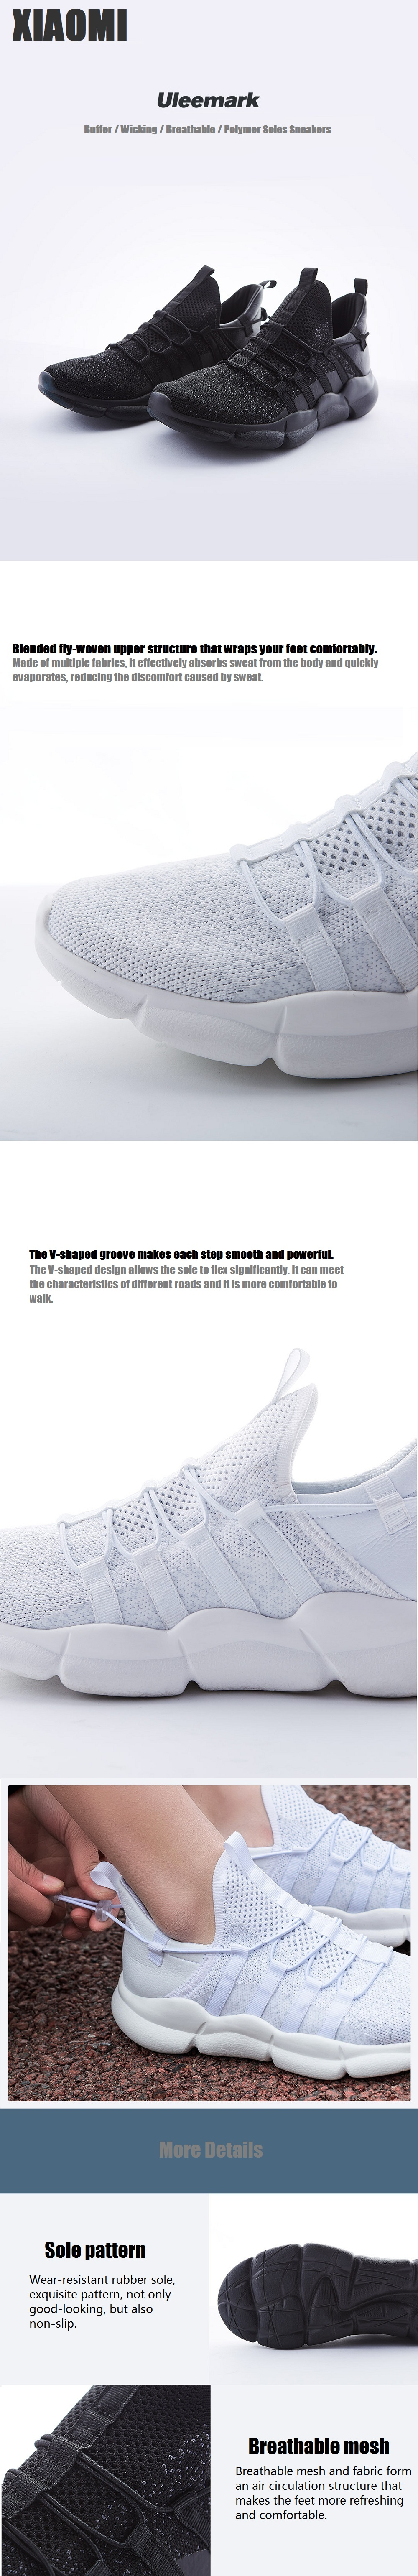 XIAOMI Uleemark Sneakers Anti-skid Buffer Breathable Sport Running Shoes Comfortable Soft Casual Shoes